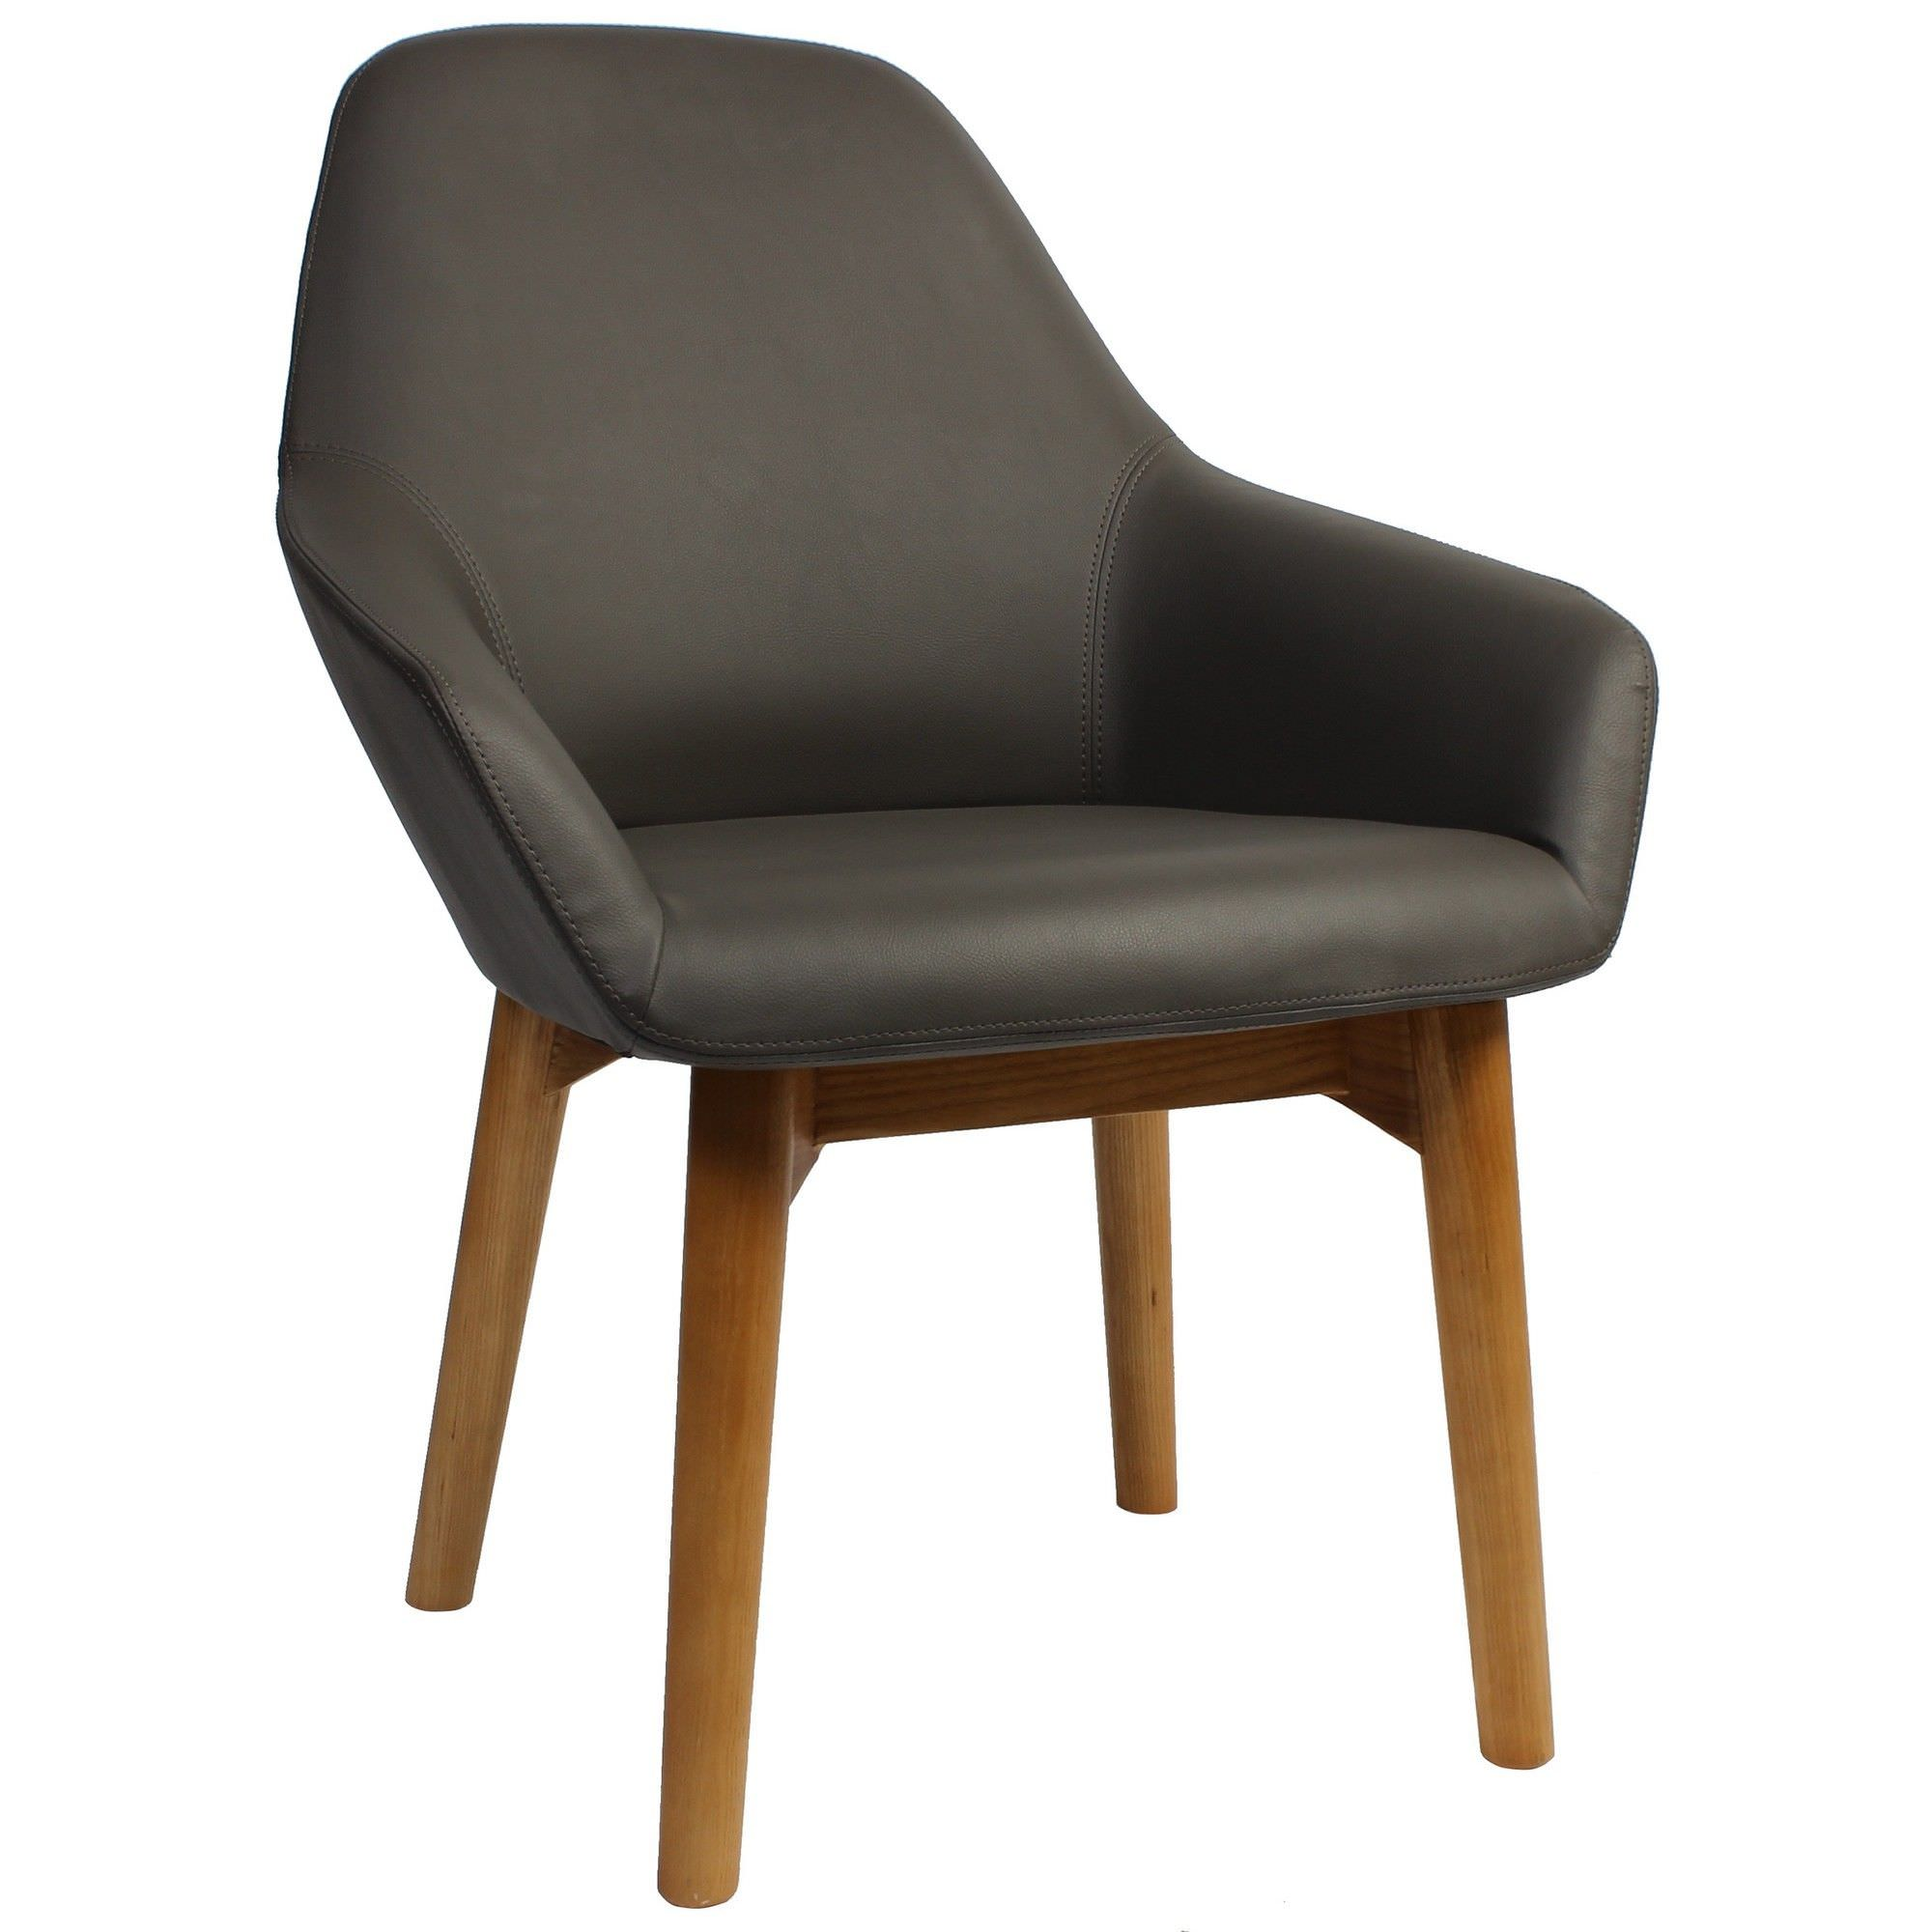 Bronte Commercial Grade Vinyl Dining Armchair, Timber Leg, Charcoal / Natural